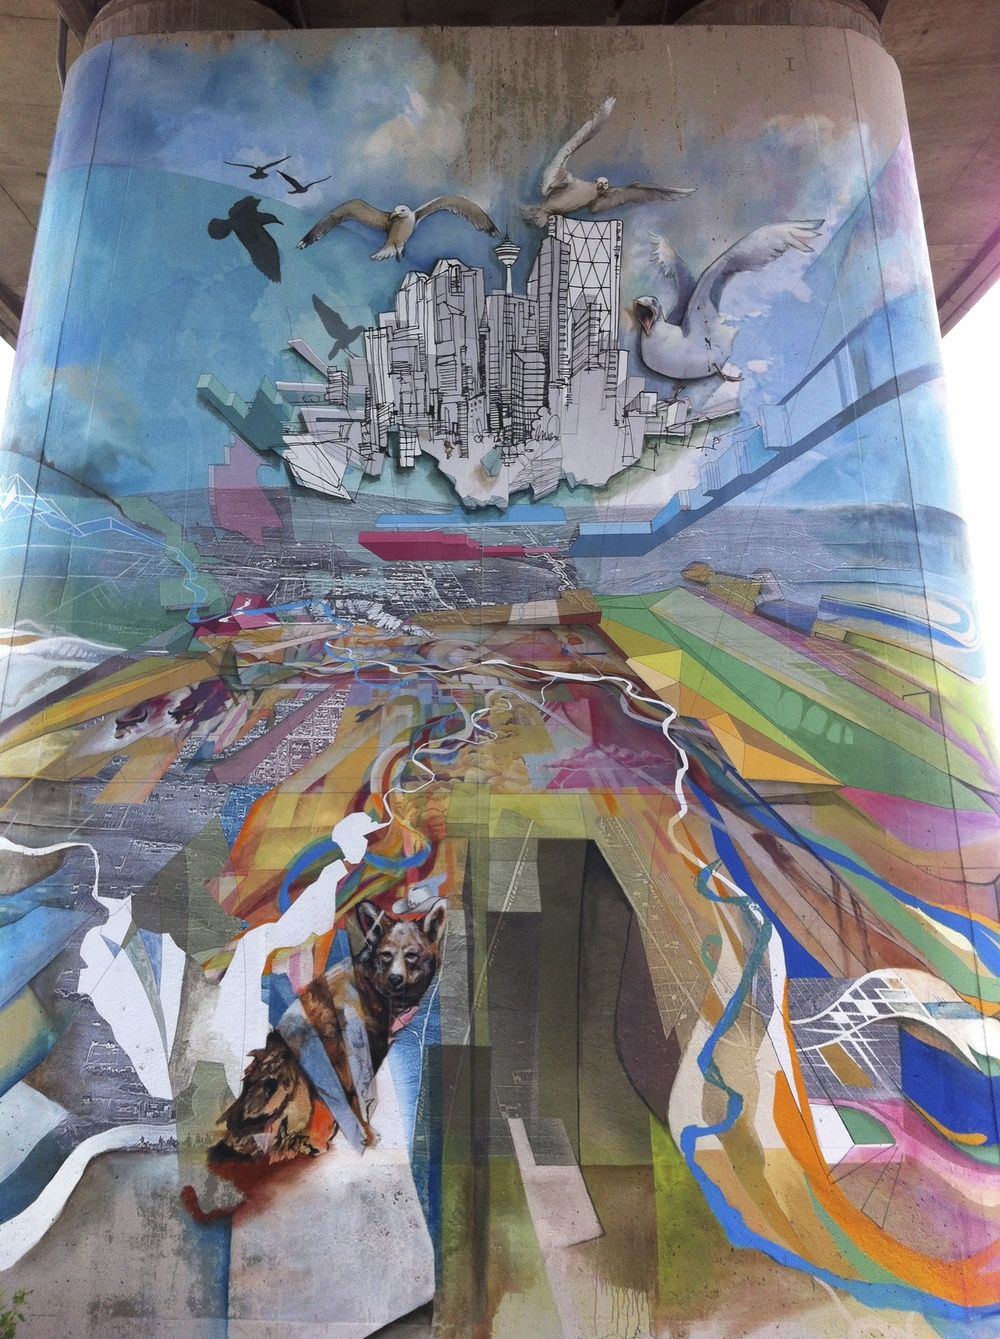 """The Field Manual: A compendium of local influence,"" by Light & Soul (Daniel j. Kirk, Ivan Ostapenko and Kai Cabunoc-Boettcher) consists of several murals along the River Walk in Calgary's East Village.  This is a temporary installation that was completed in the summer of 2013 and will remain for 24 months."